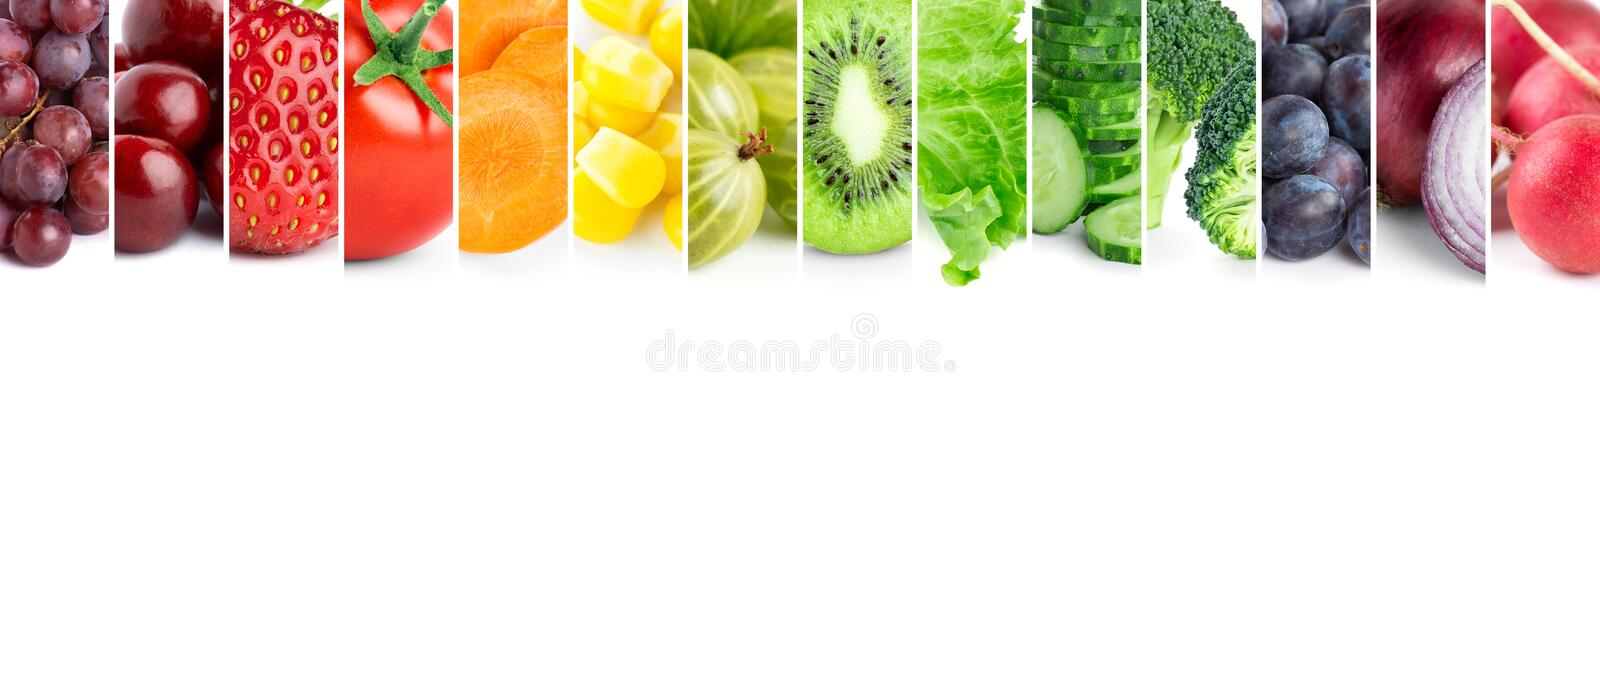 Healthy food. Fresh color fruits and vegetables stock image